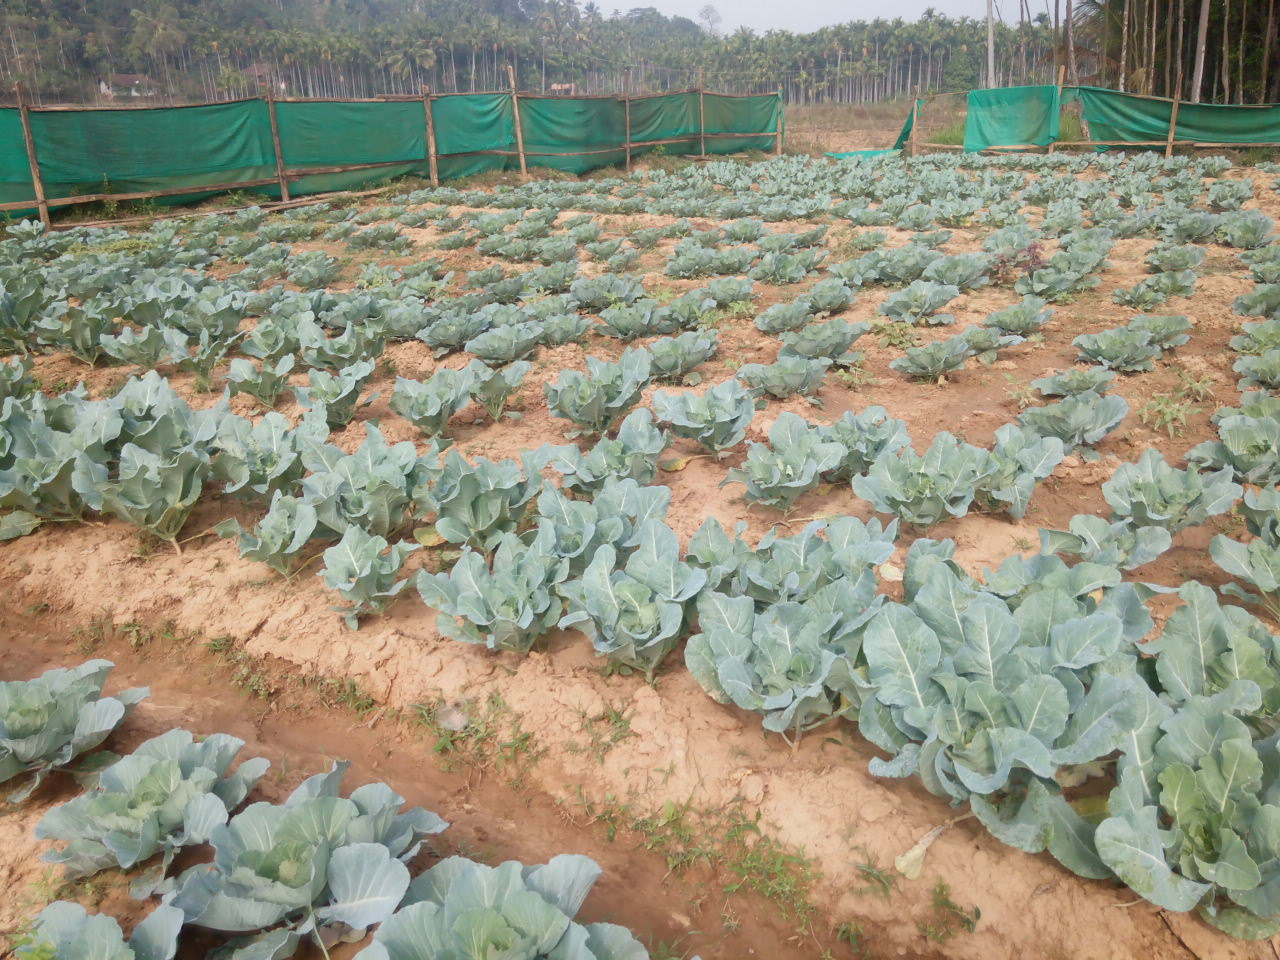 The carbon neutrality project has made Meenangadi vegetable self-sufficient.